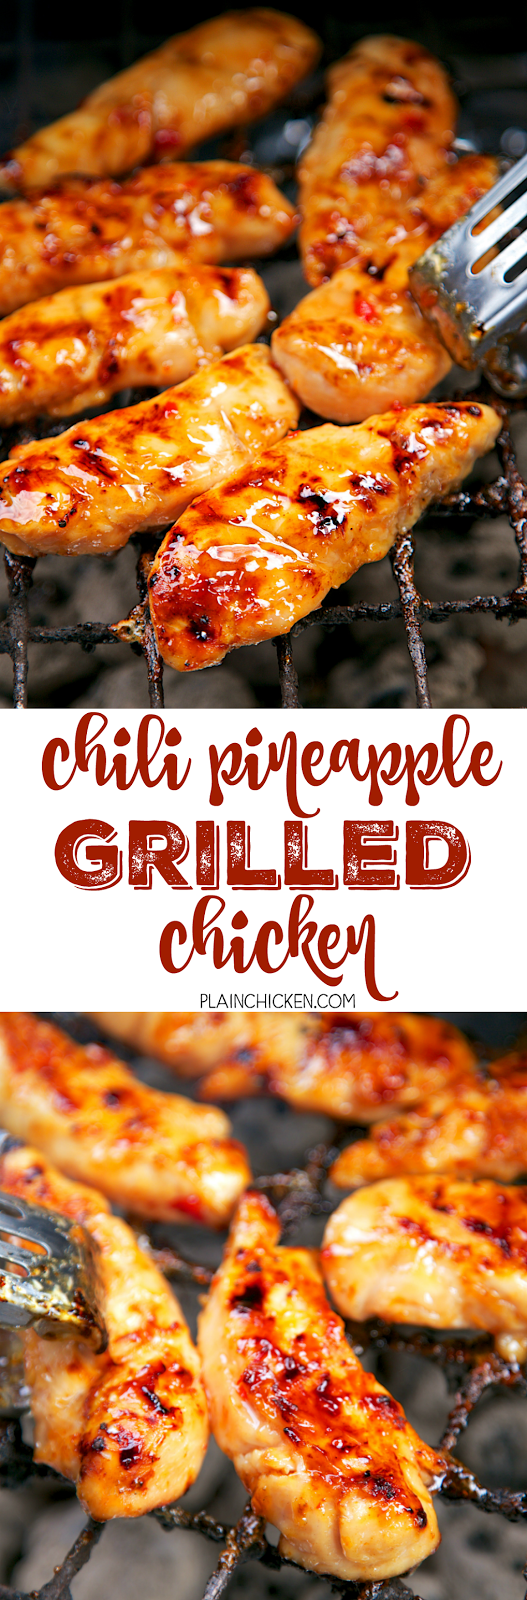 Chili Pineapple Grilled Chicken - only simple 4 ingredients! Chicken, chili sauce, pineapple juice and honey. TONS of great flavor!! We ate this chicken 2 days in a row! #grillingrecipes